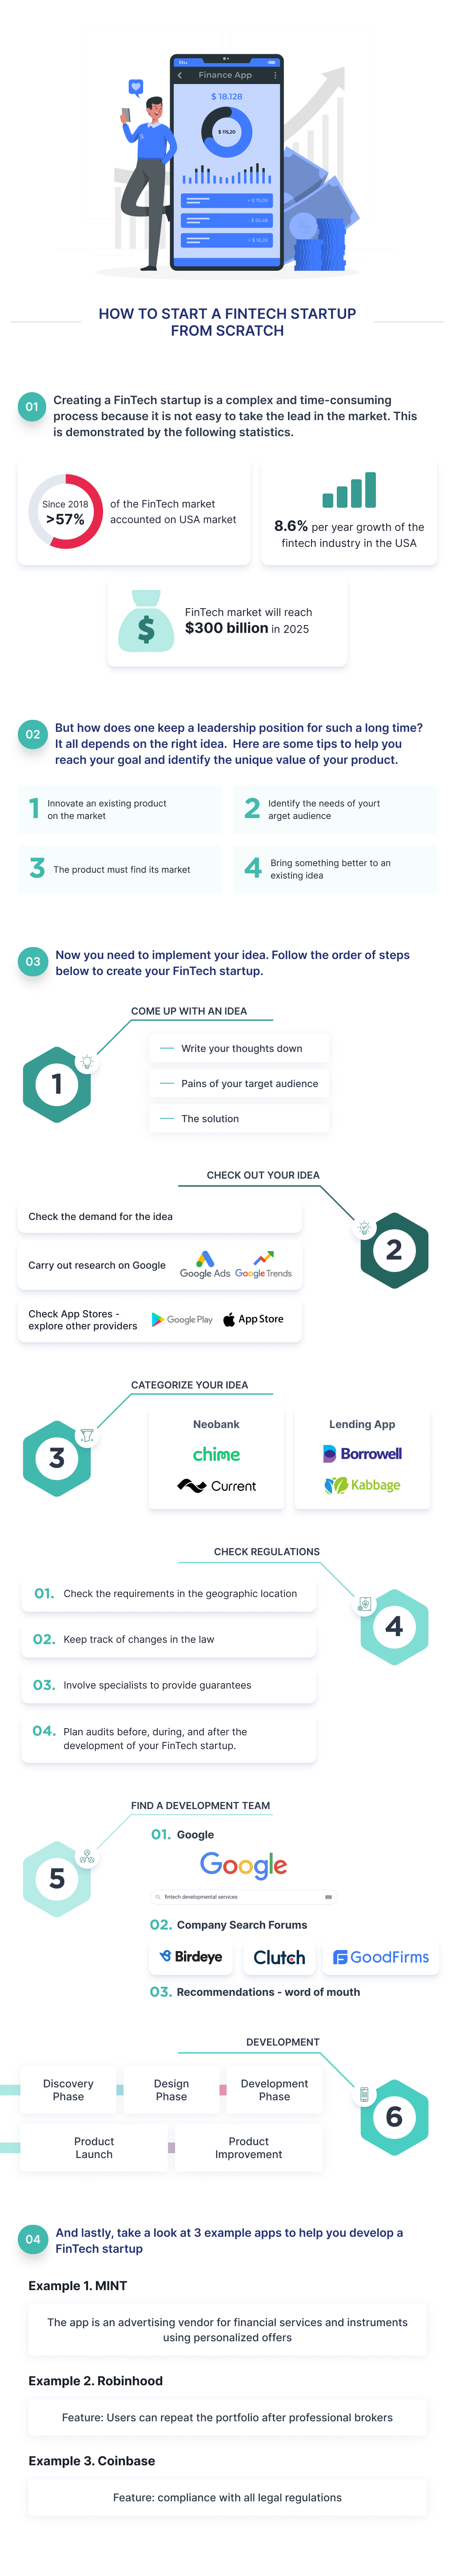 This is an infographic, that describes all necessary steps to find an idea and start a FinTech startup from scratch